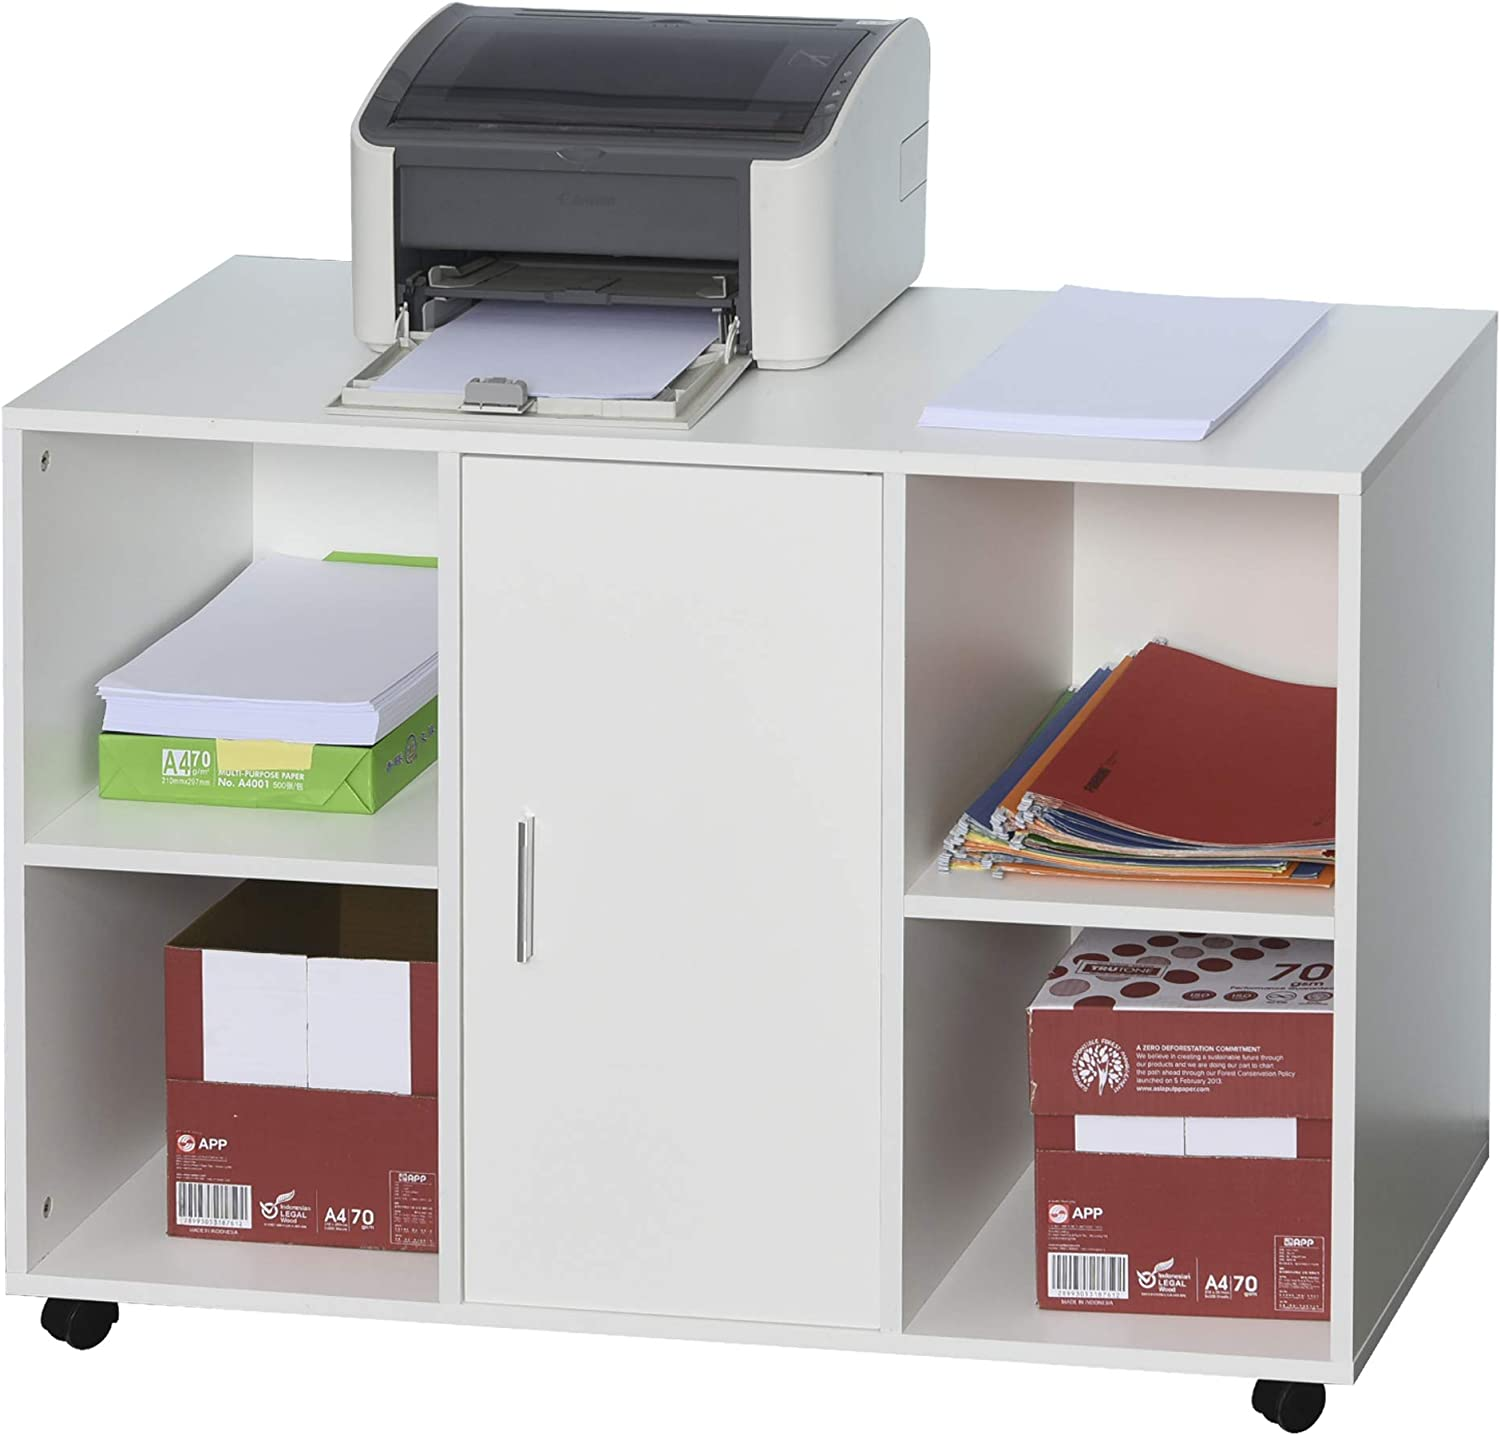 Vinsetto Multipurpose Filing Cabinet Printer with Inter an Stand Daily Chicago Mall bargain sale